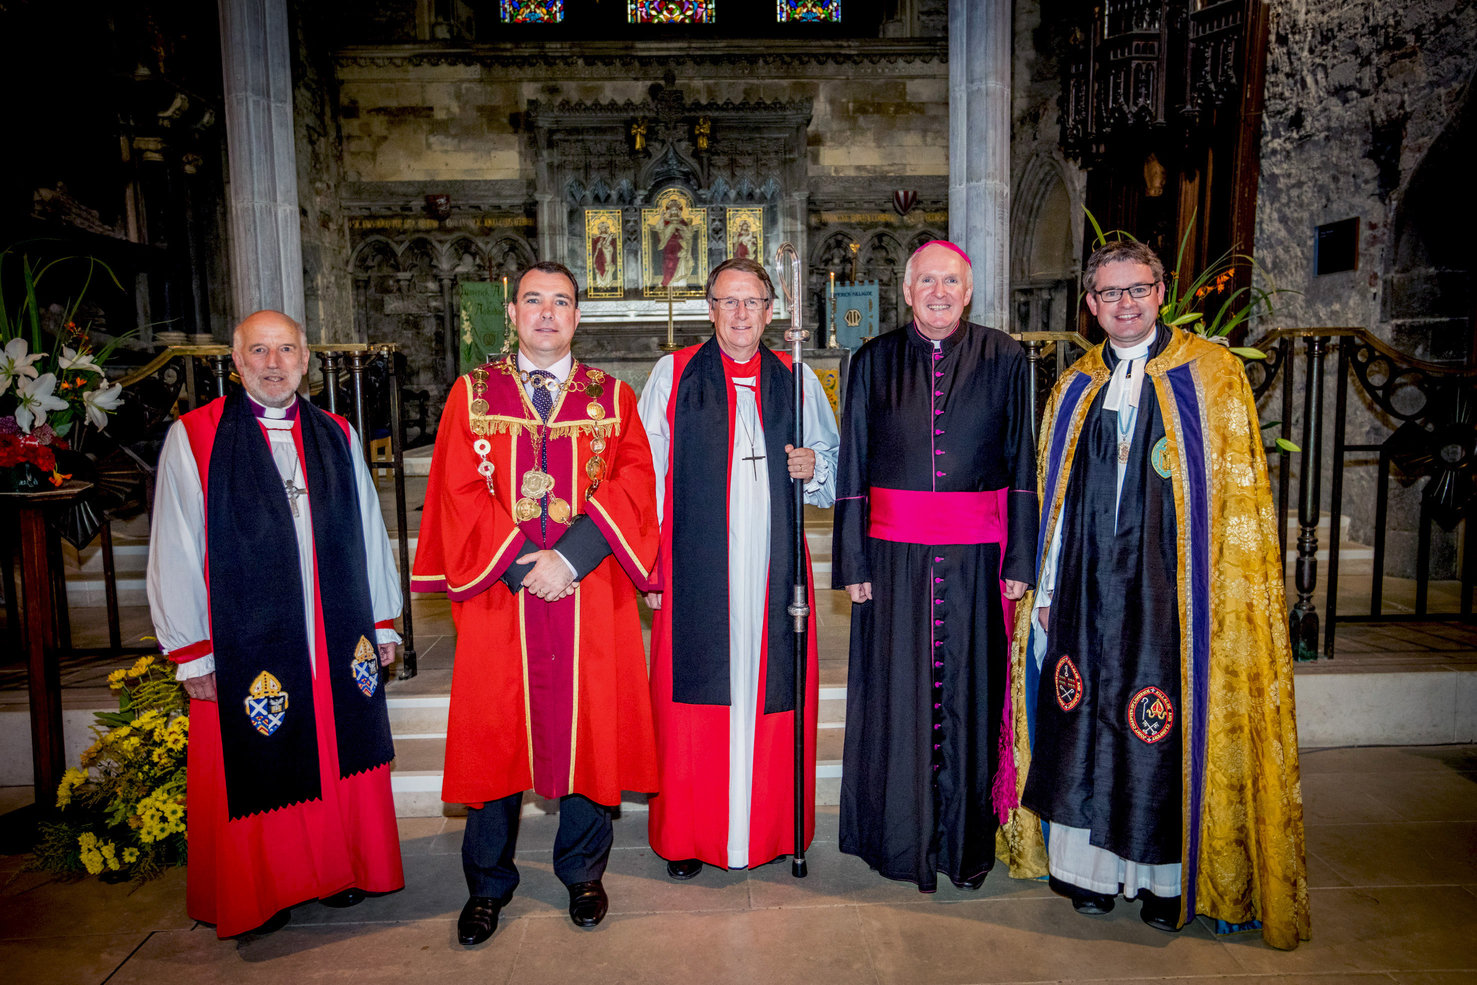 St Marys Cathedral Service